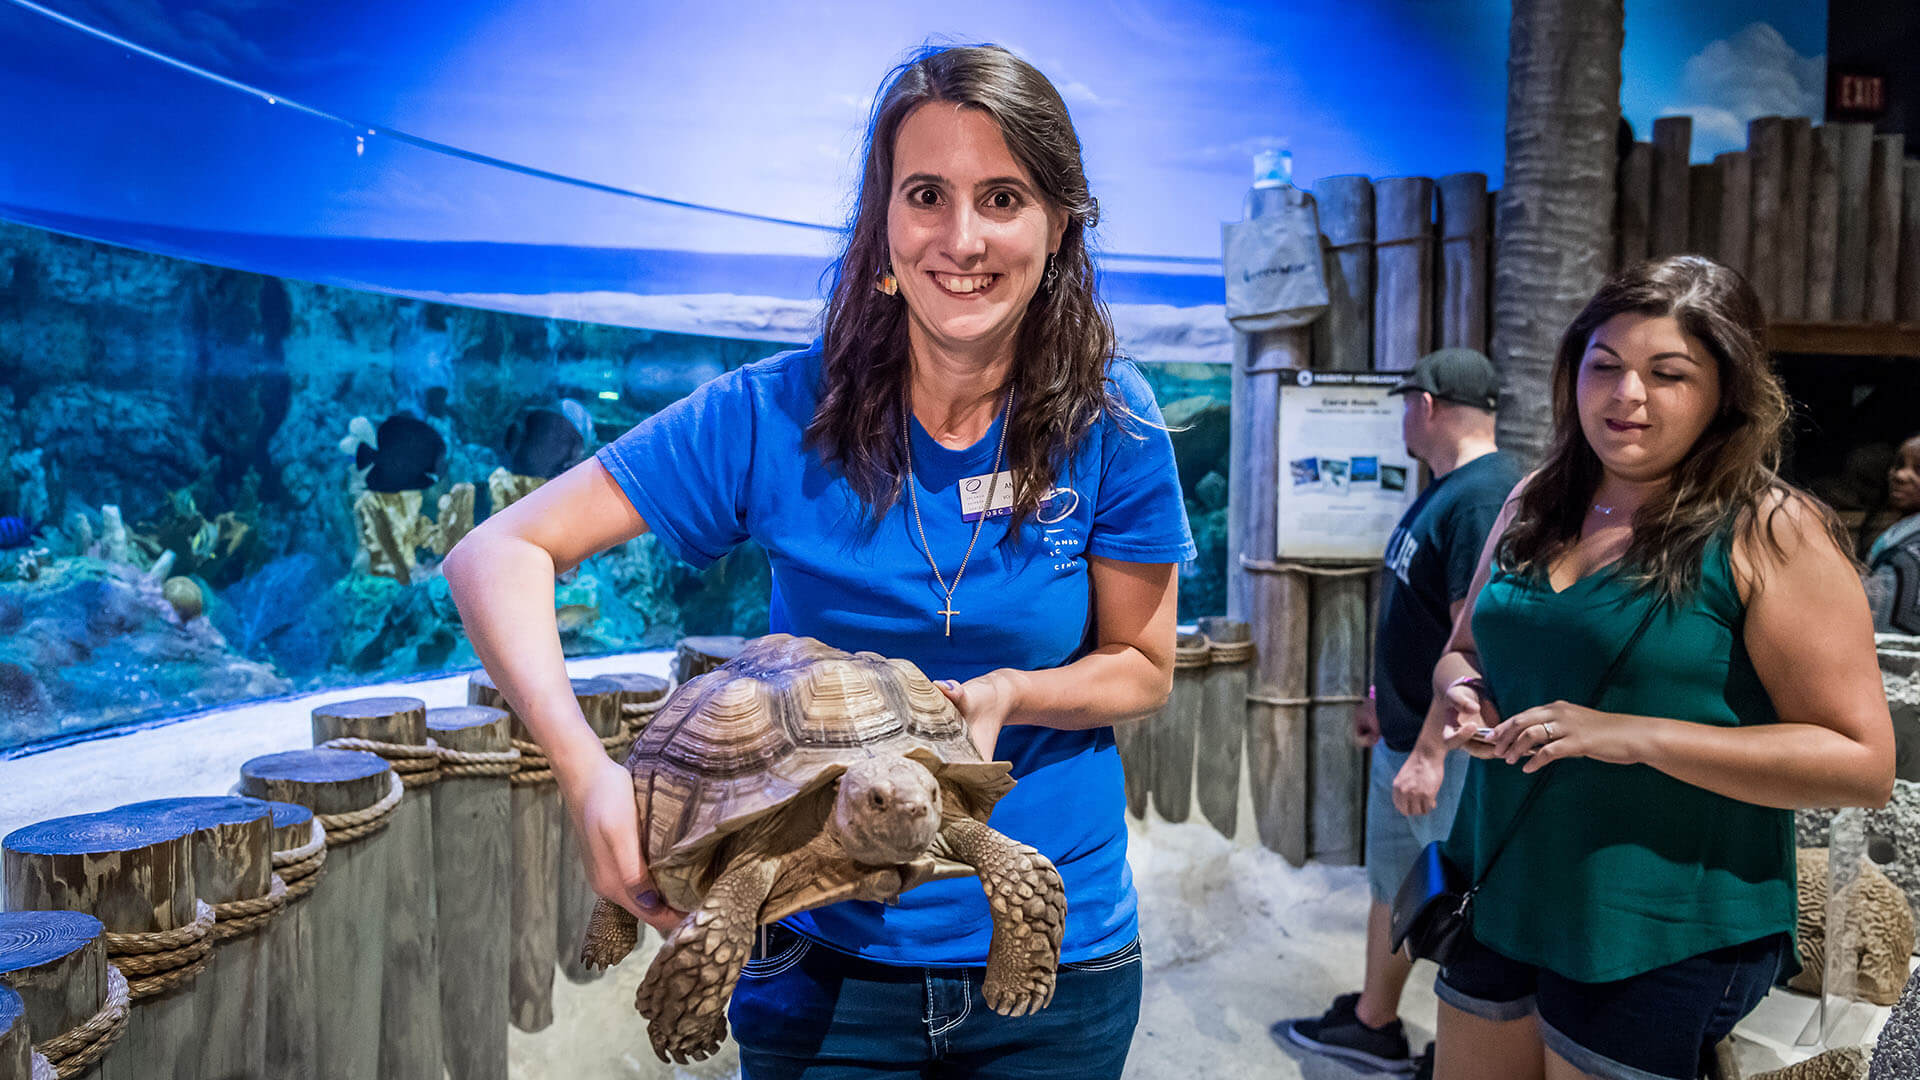 Adult volunteer in the NatureWorks exhibit holding a tortoise.